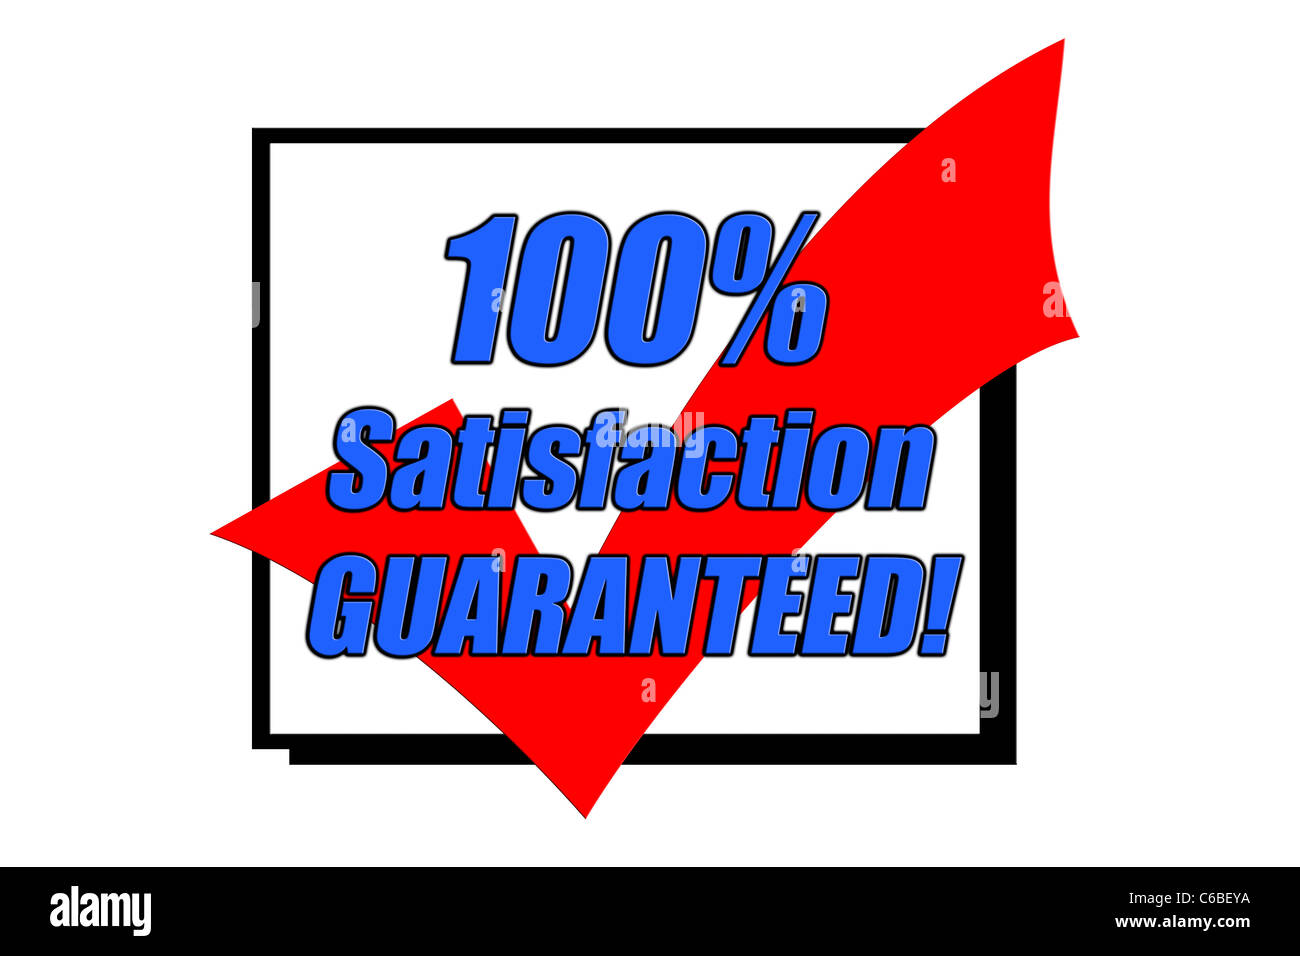 100% Satisfaction Guaranteed concept isolated on white - Stock Image